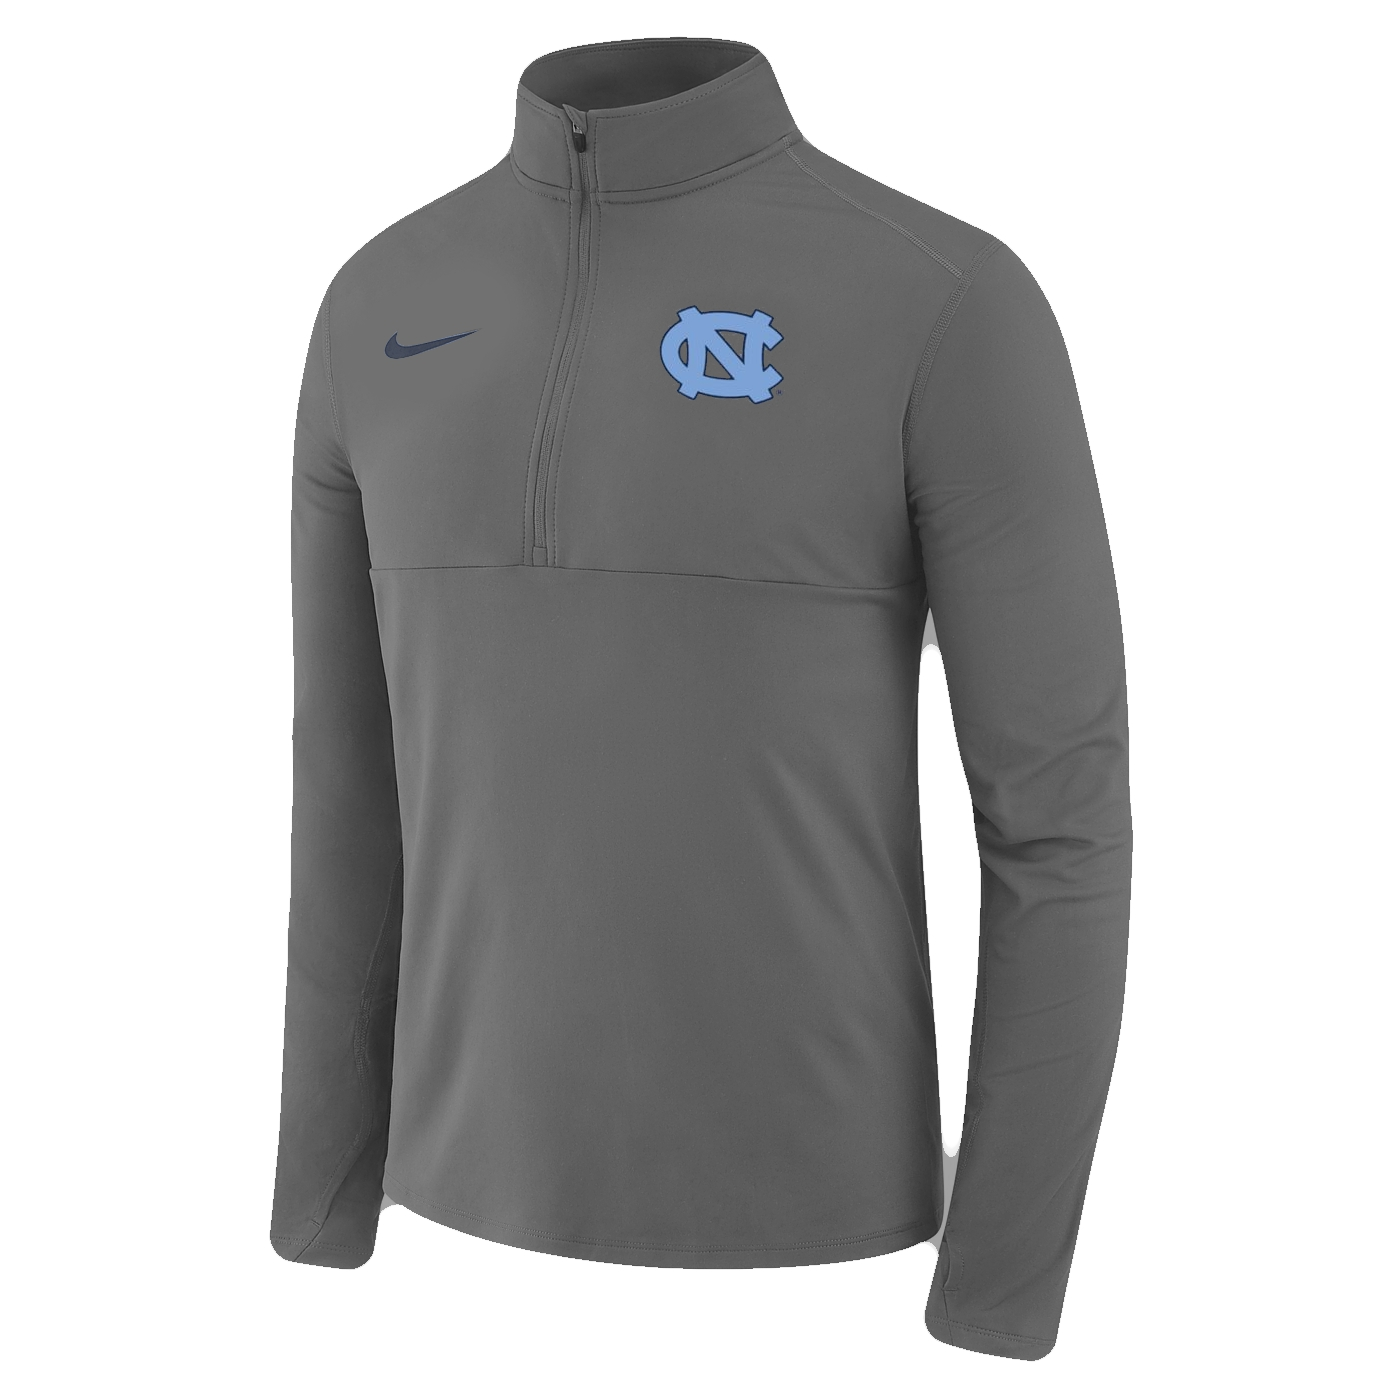 d0aec79f Johnny T-shirt - North Carolina Tar Heels - Nike Core 1/2-Zip Pullover  (Grey) by Nike